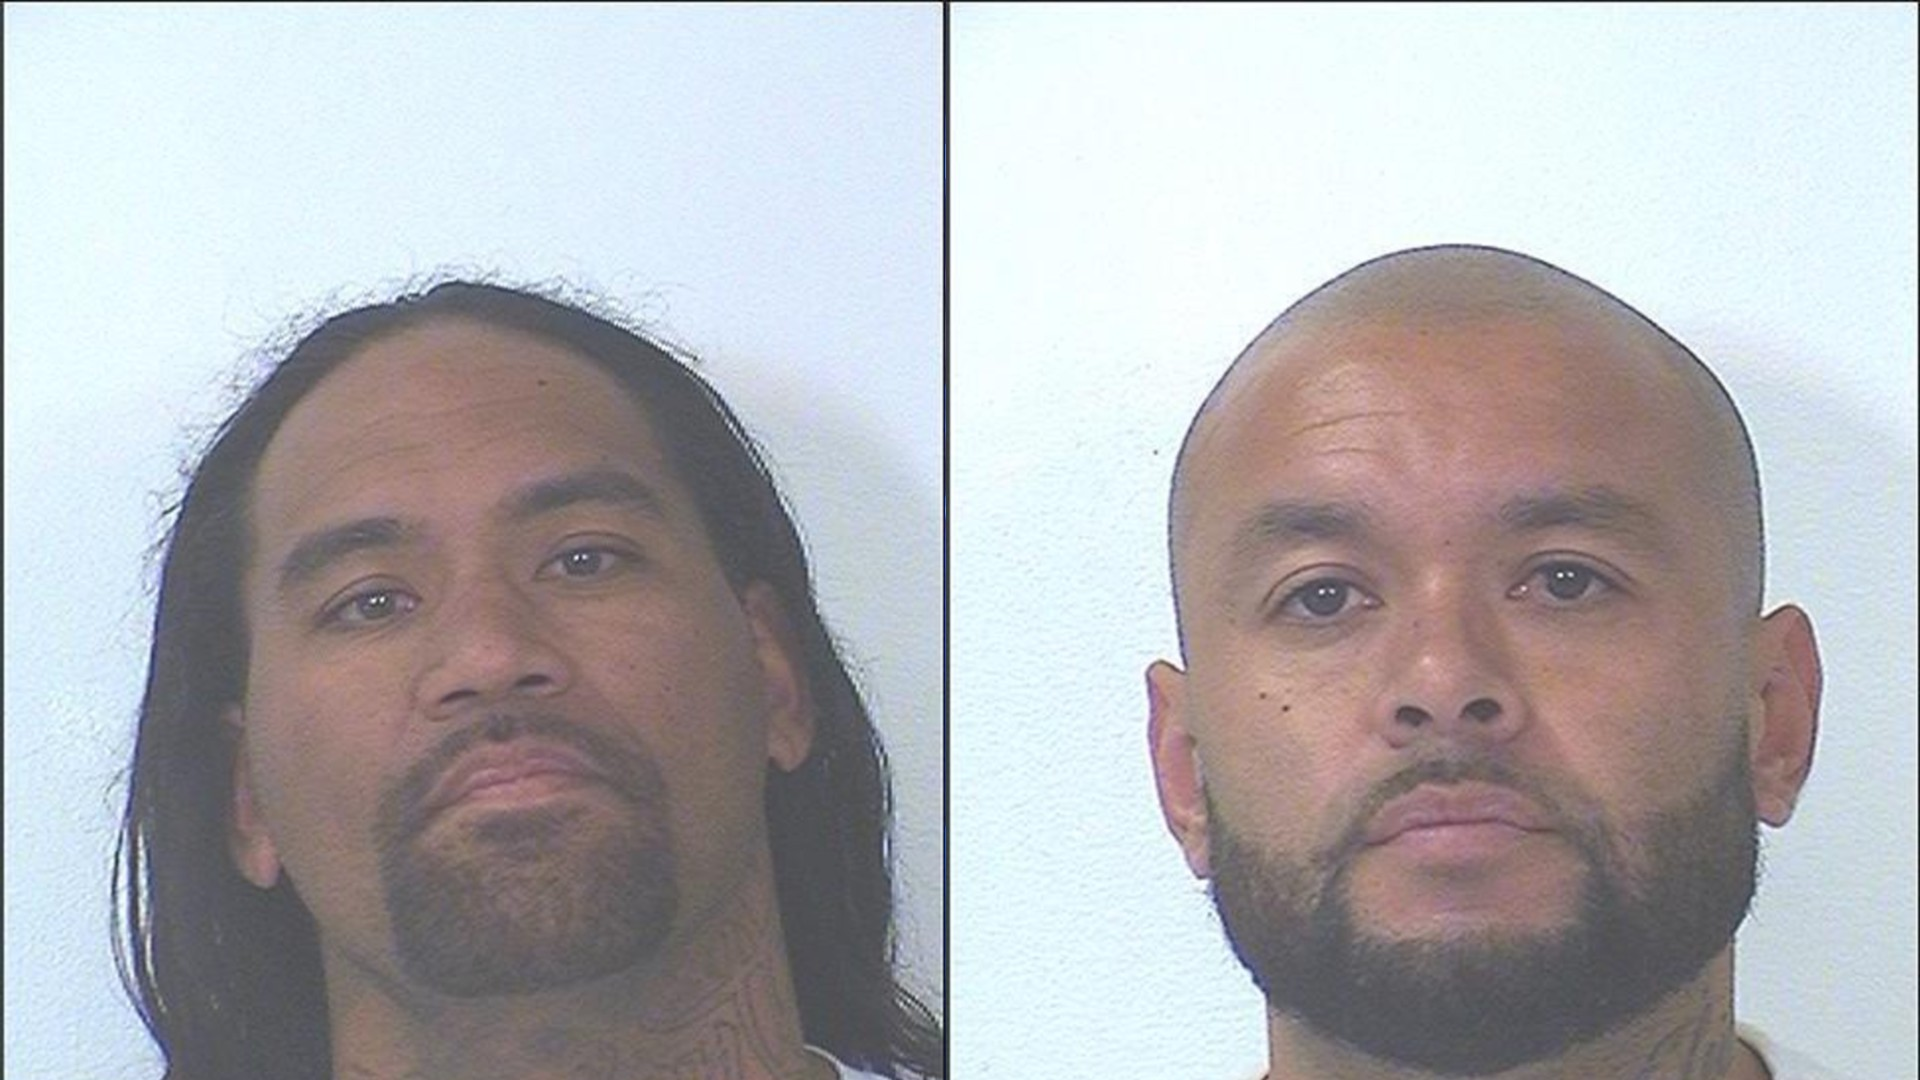 Myles S. Asuega (left) was found dead in his prison cell Friday. Roberto Kaimimoku, 33, was Asuega's cellmate and is the suspect. (California Department of Corrections and Rehabilitation)